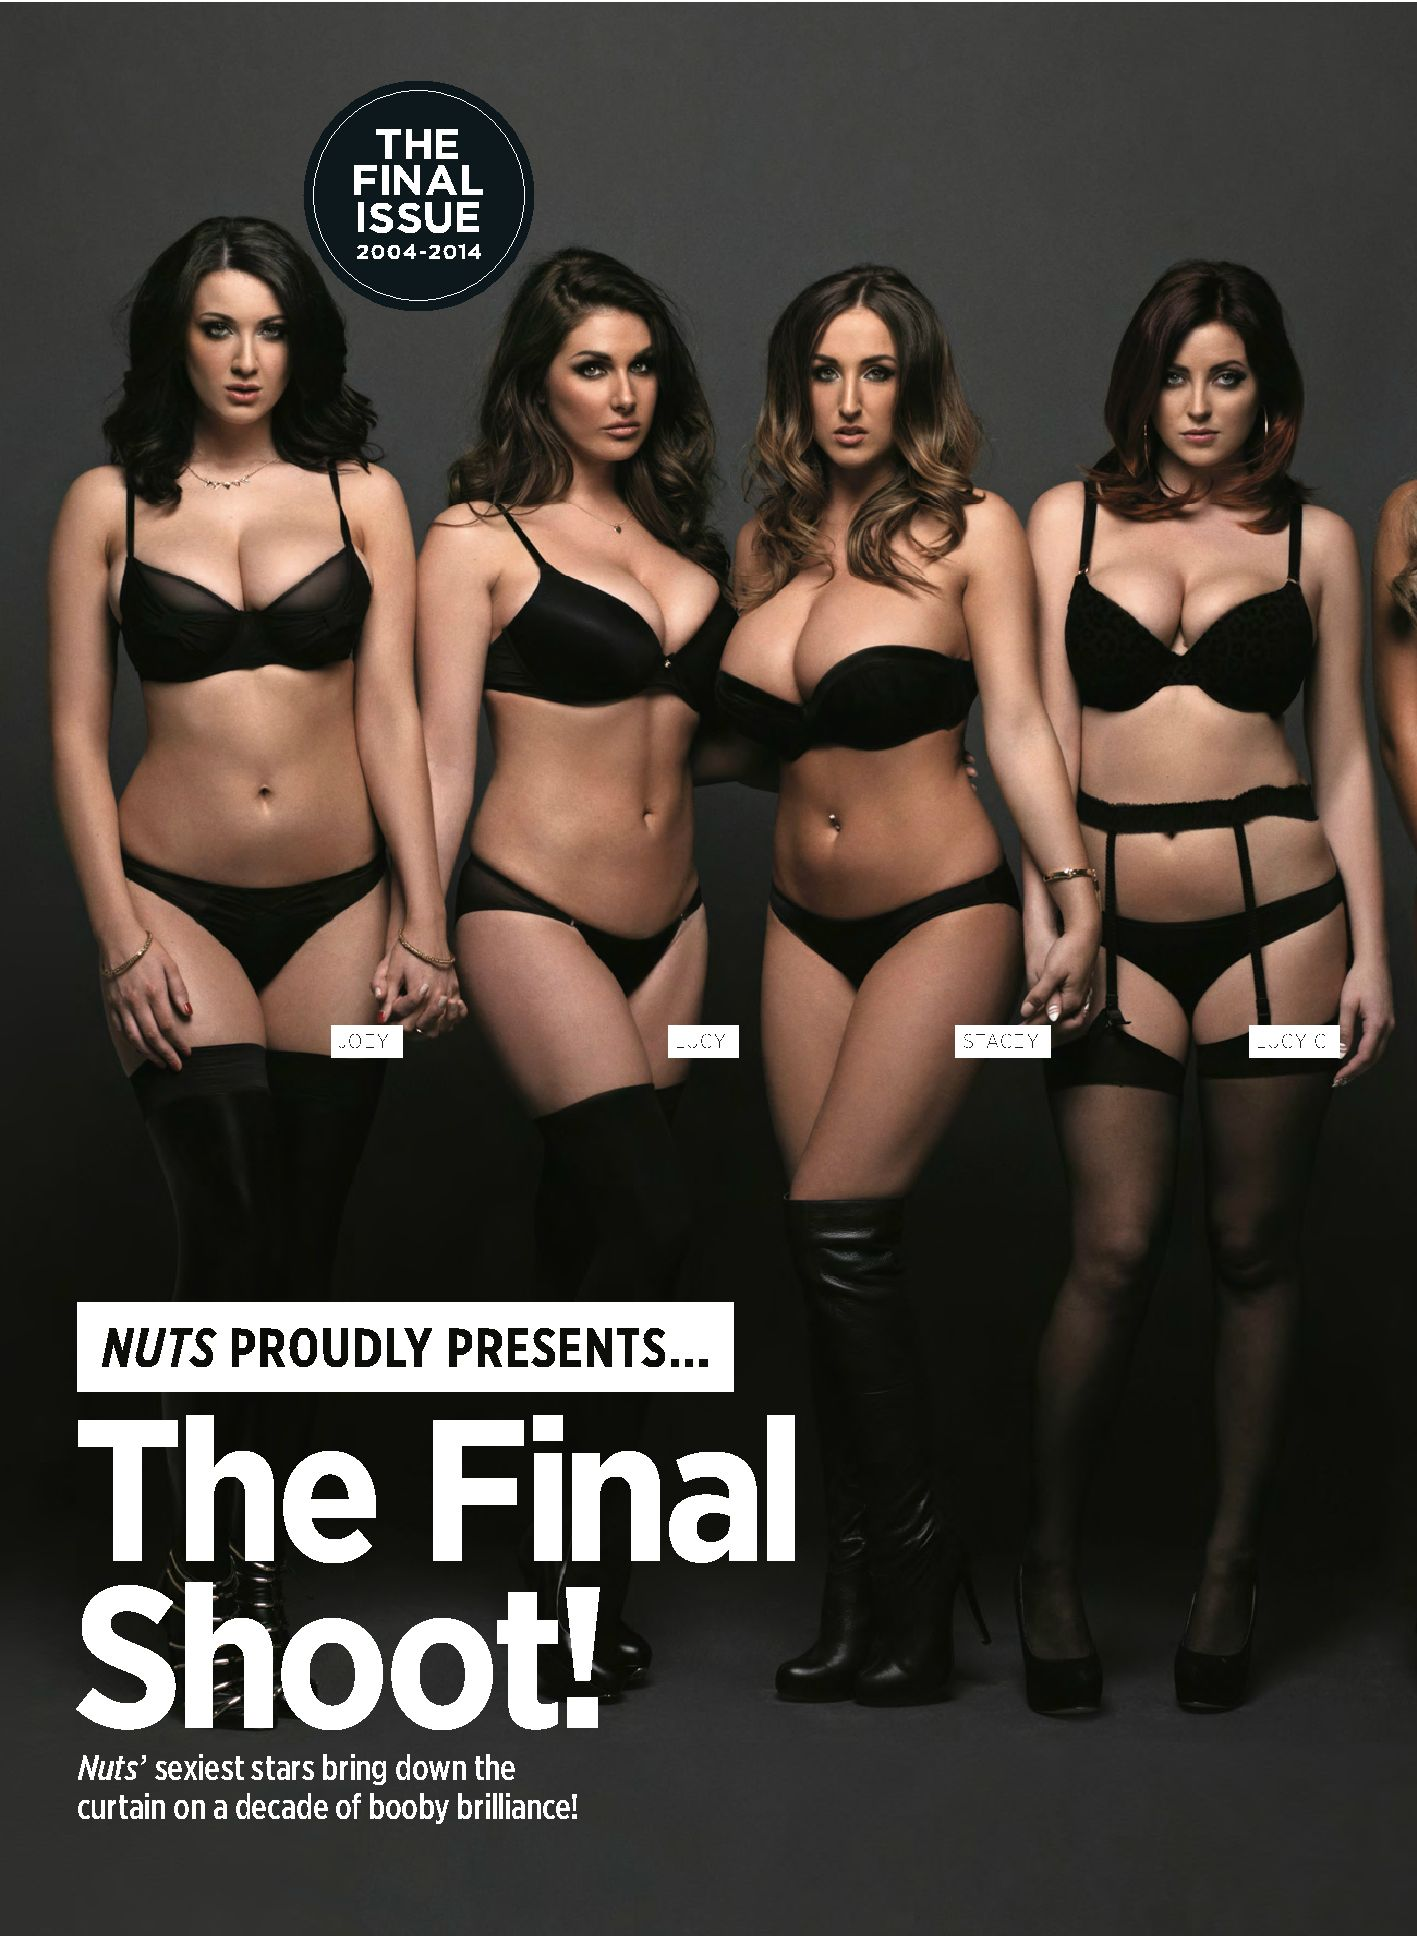 Nuts: The Final Issue (+18) | All That I Love